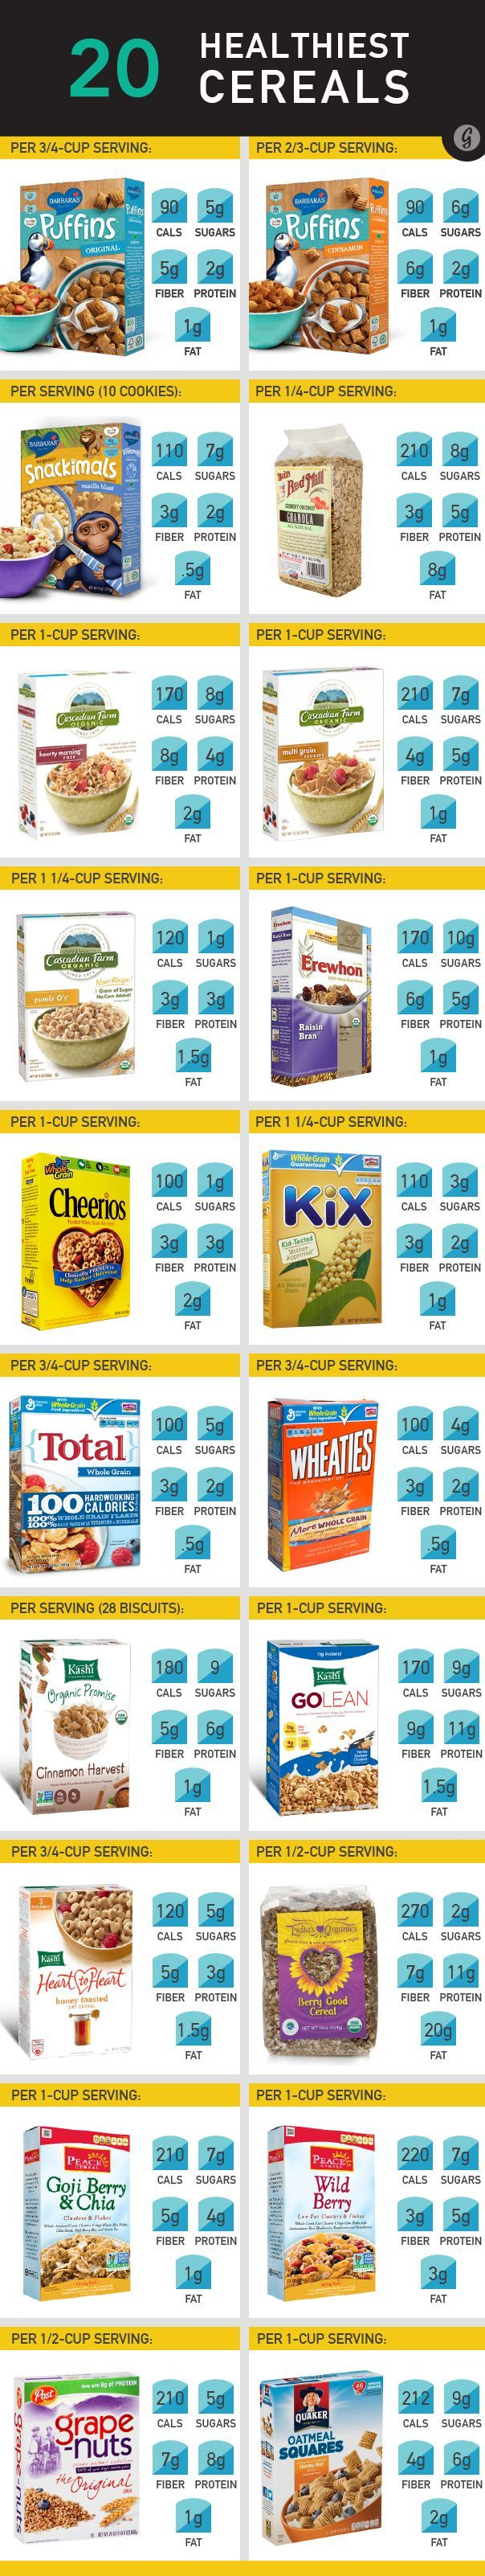 The 20 Healthiest Cereals — Going grocery shopping soon? Make sure you know exactly which cereals are healthiest before you buy! #cereal #breakfast #healthy #greatist